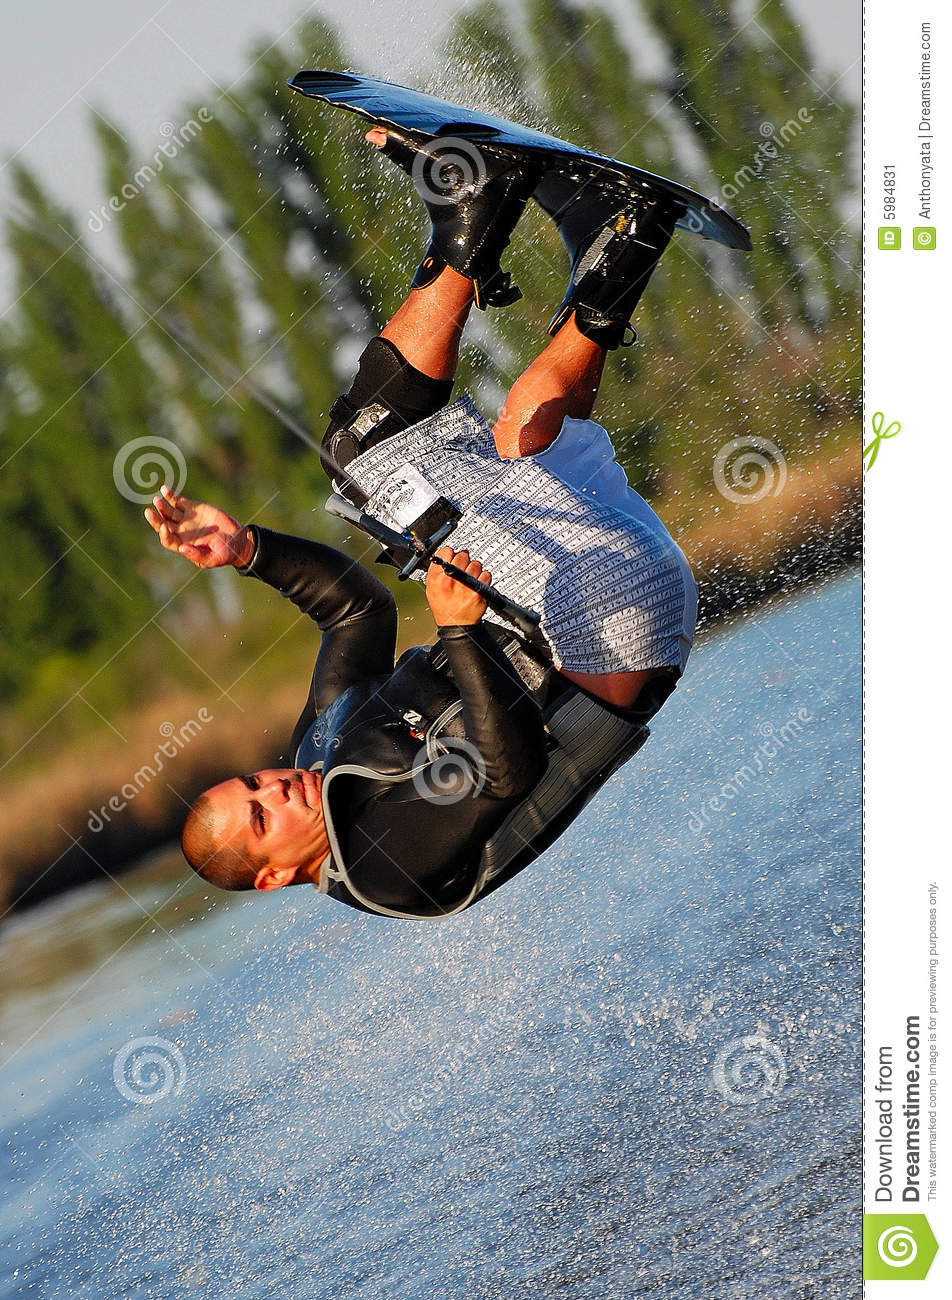 Somersault on a Wakeboard